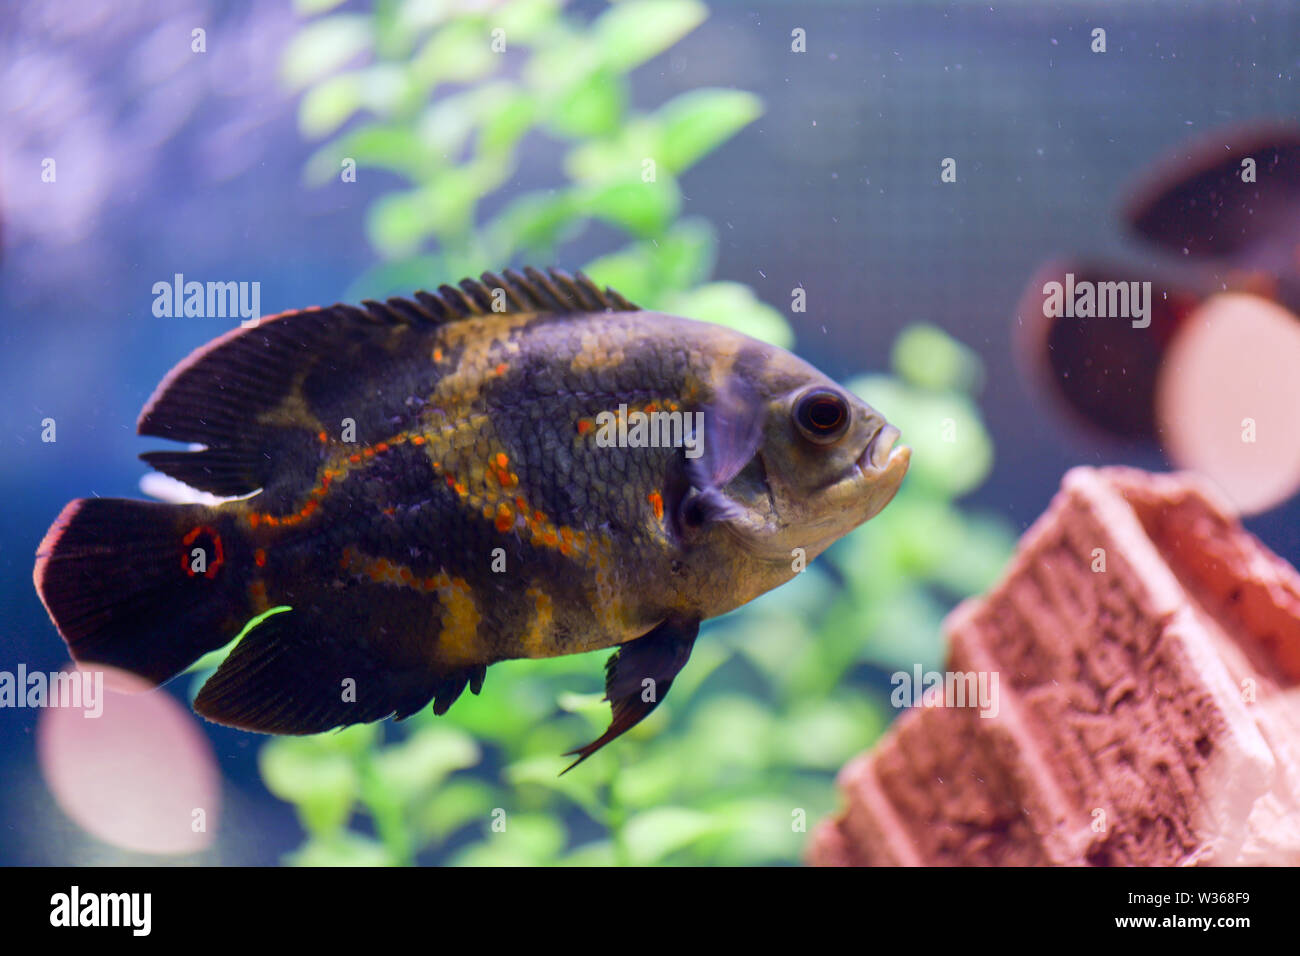 Oscar (Astronotus ocellatus) macro. Fish astronaut swims in a transparent aquarium with a beautiful design - Stock Image